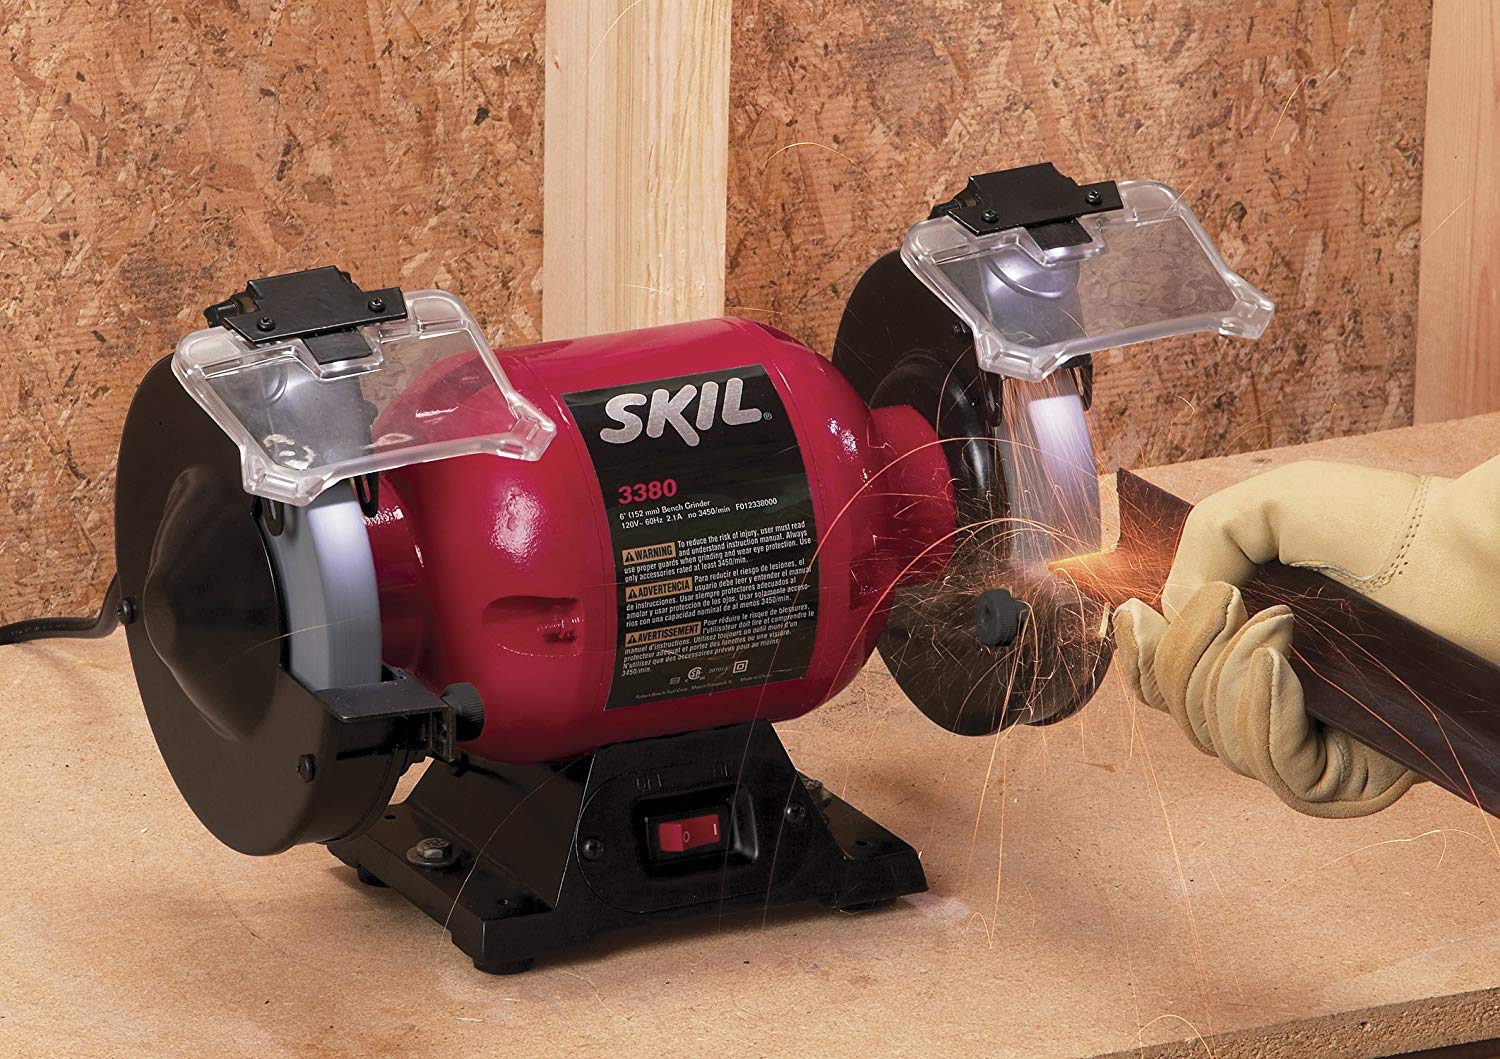 Stupendous 10 Best Bench Grinder Reviews Full Guide And Hands On 2019 Spiritservingveterans Wood Chair Design Ideas Spiritservingveteransorg